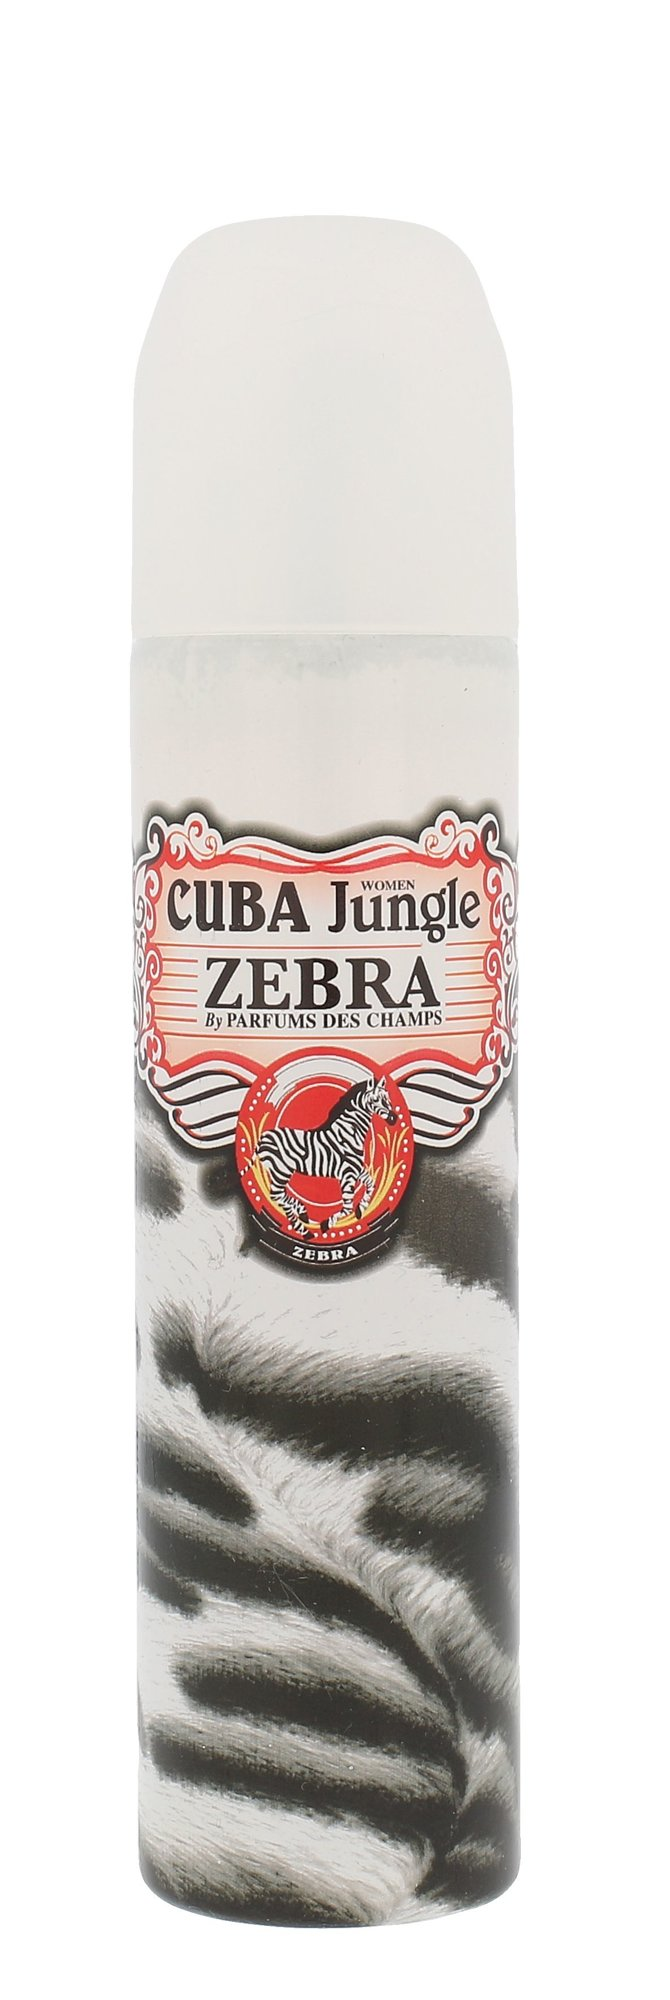 Cuba Cuba Jungle Zebra EDP 100ml